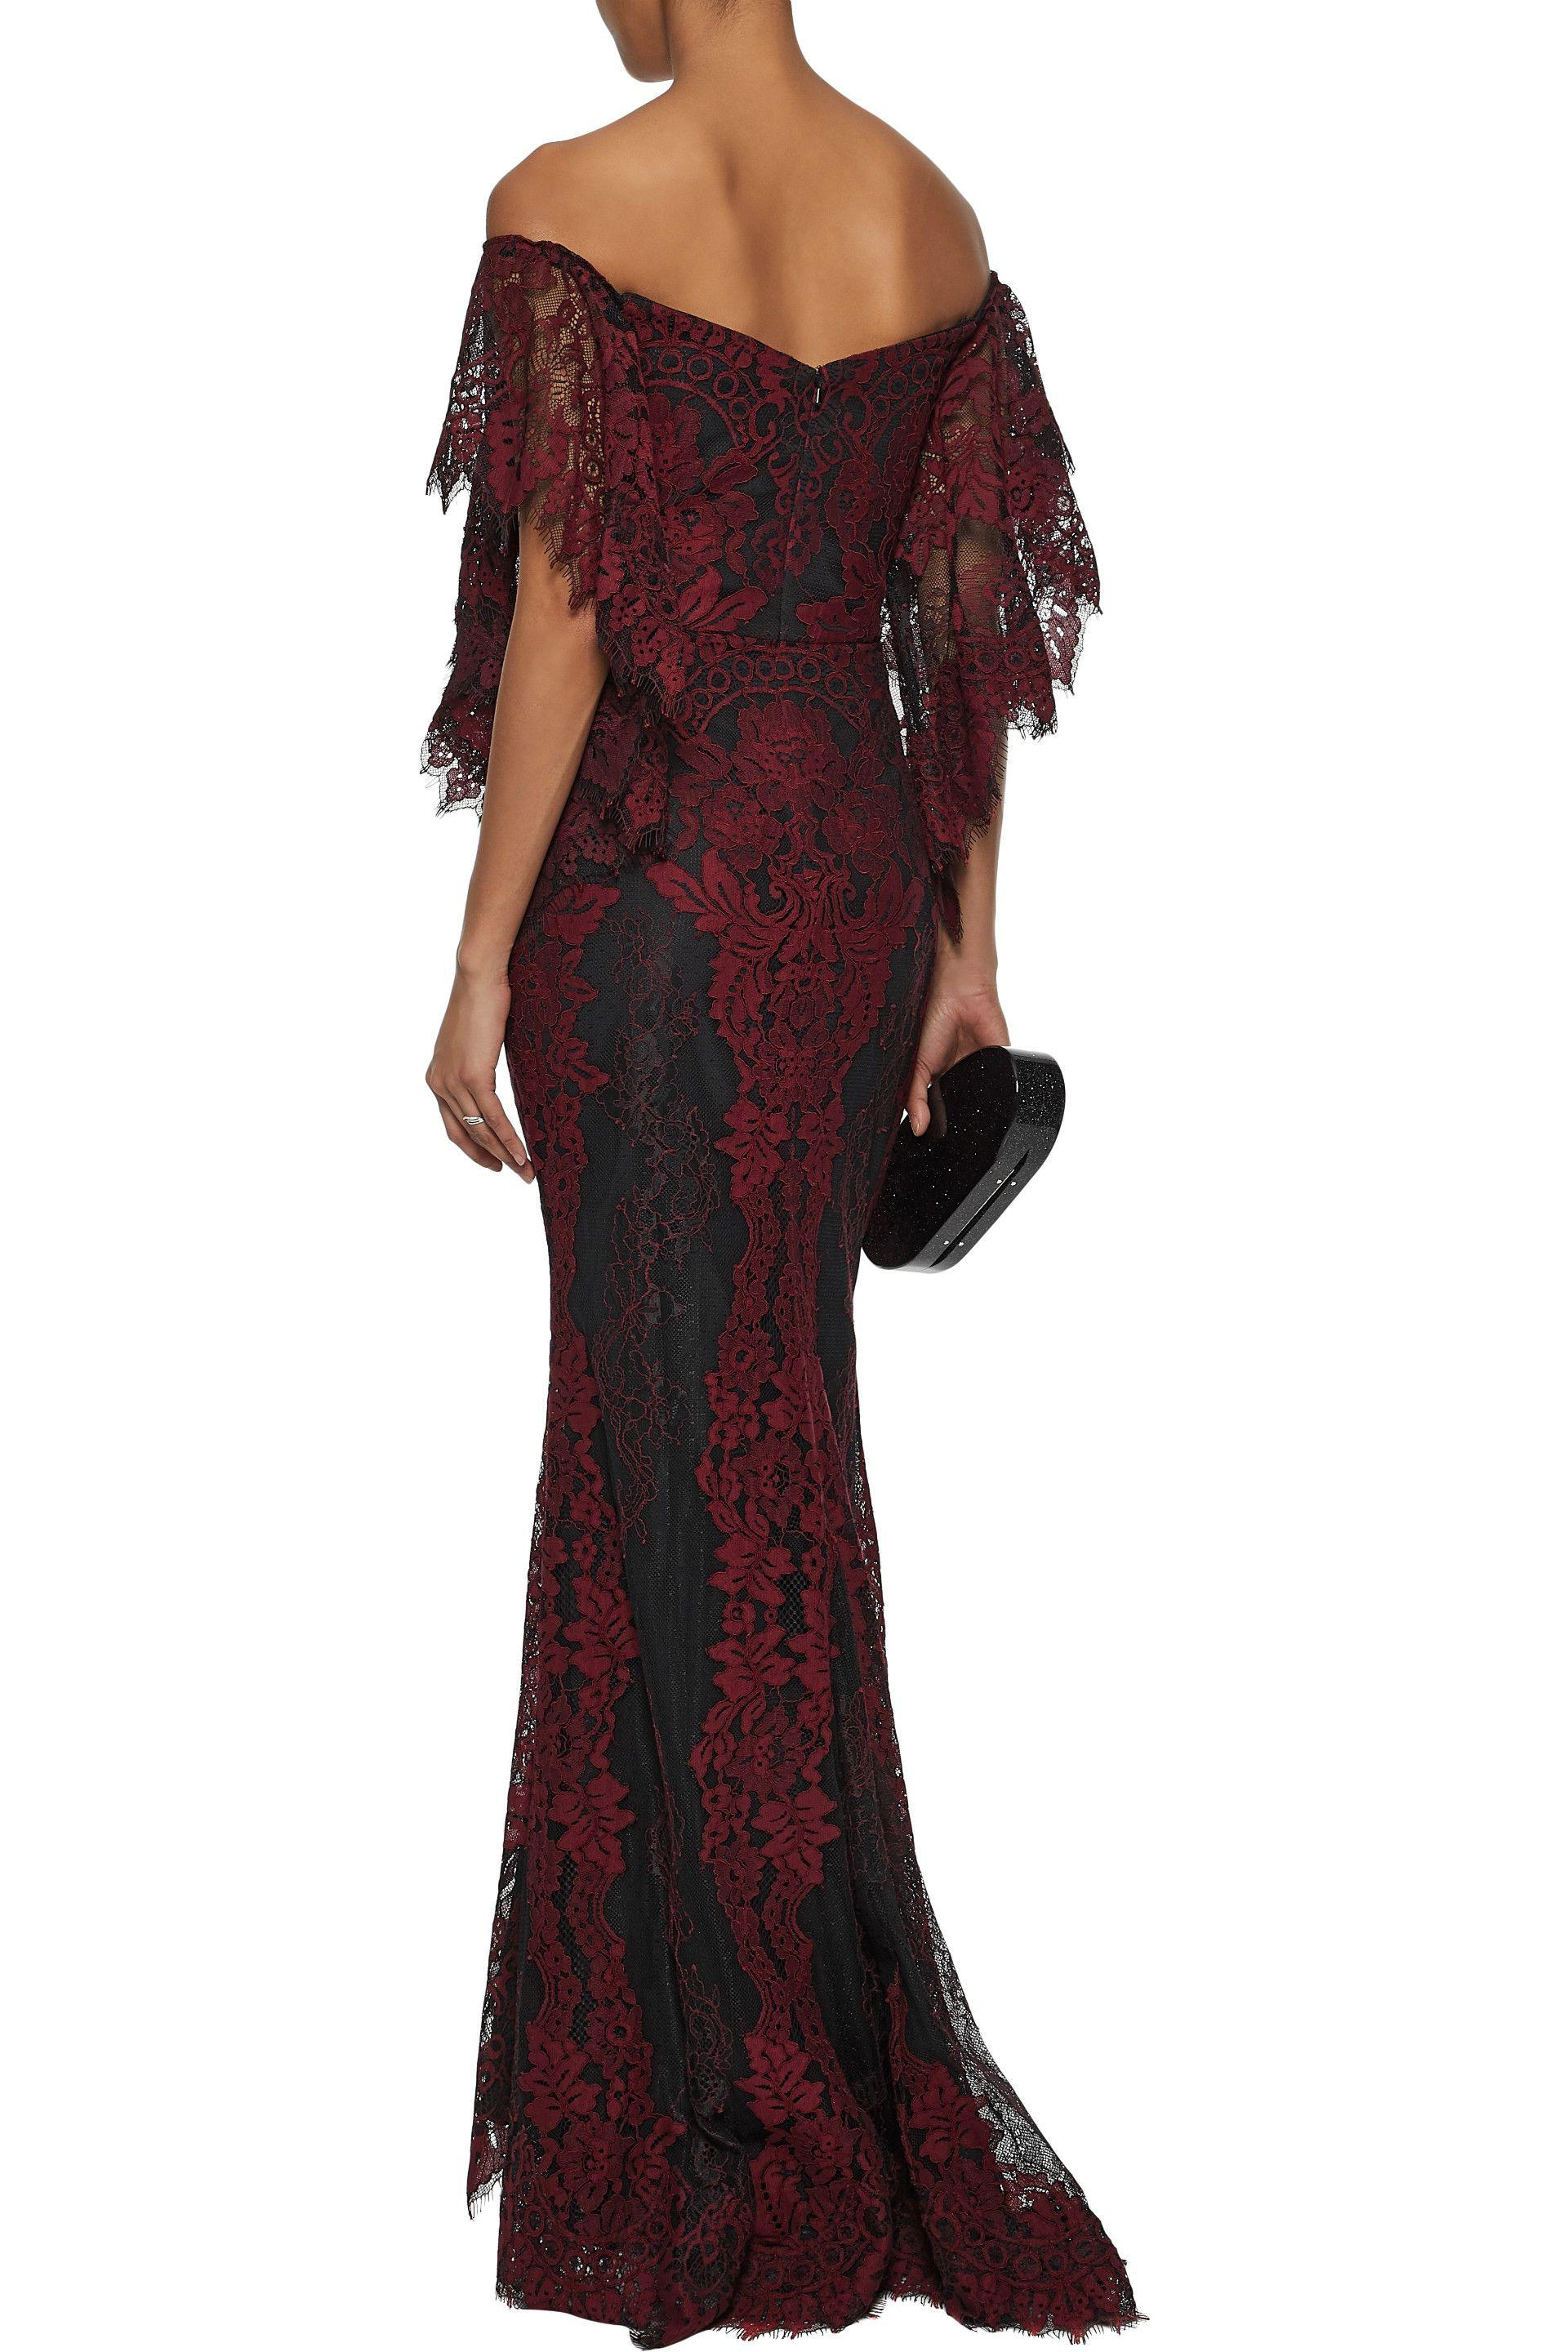 4407eecedf1 Badgley Mischka Off-the-shoulder Draped Corded Lace Gown - Lyst